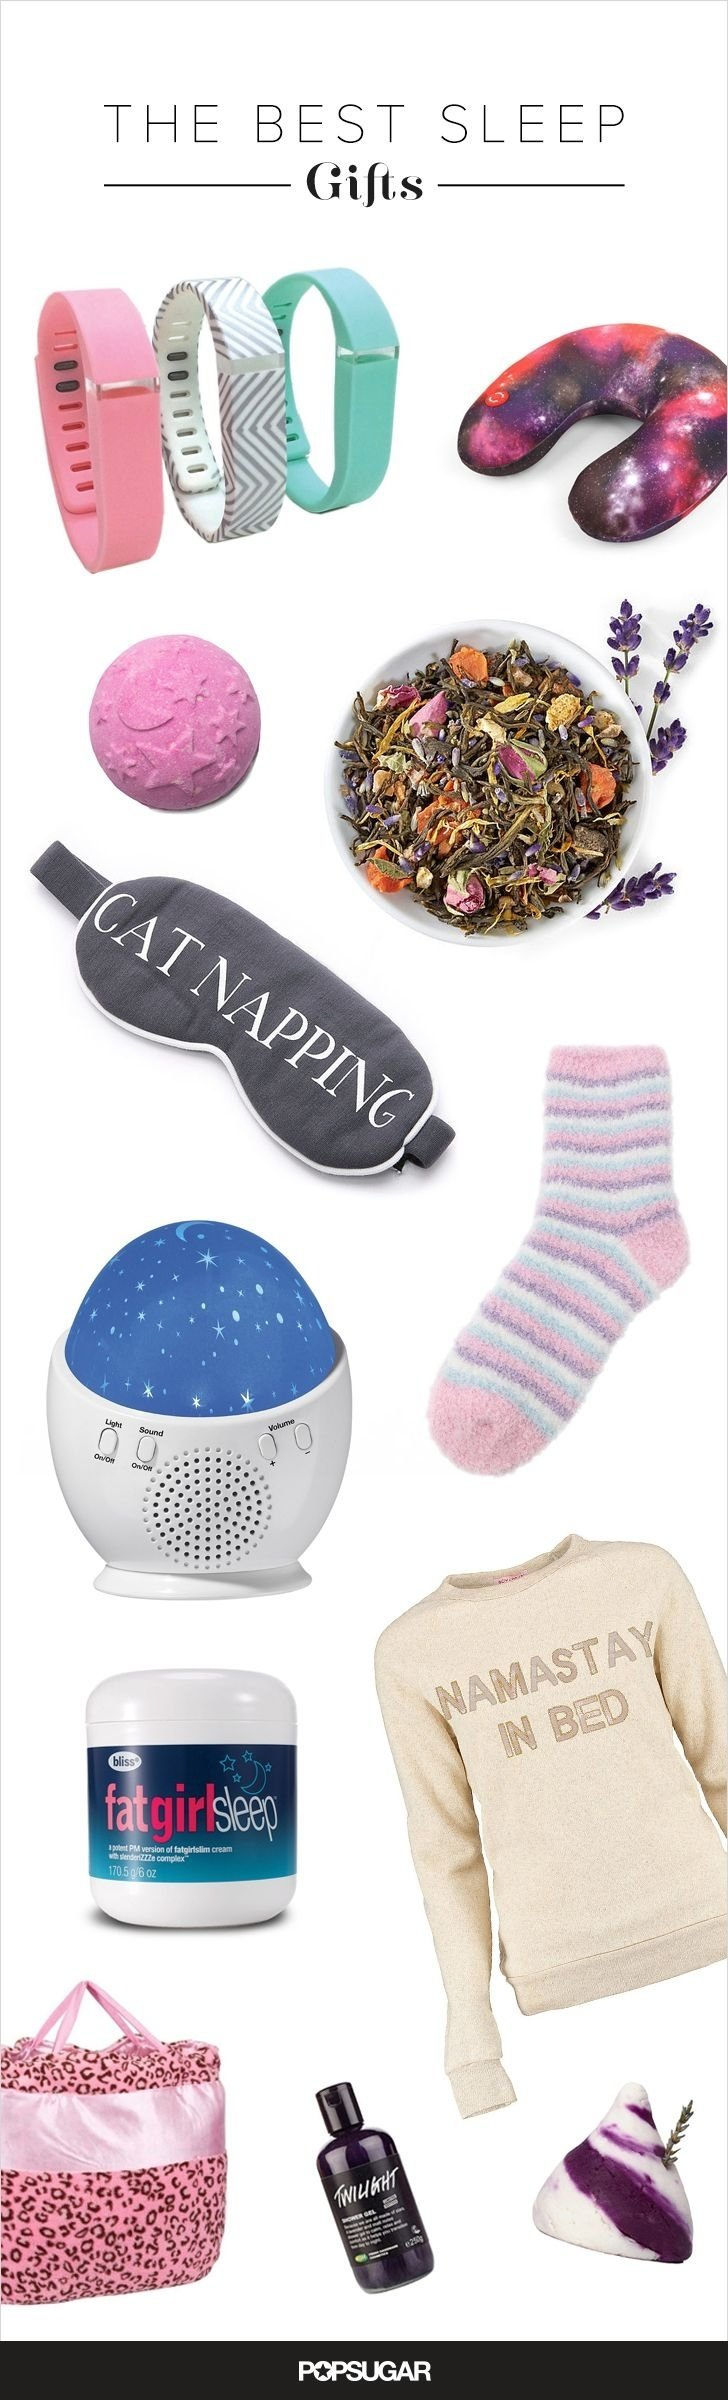 10 Stylish Christmas Ideas For College Girls christmas gifts college girls sangsterward 2020